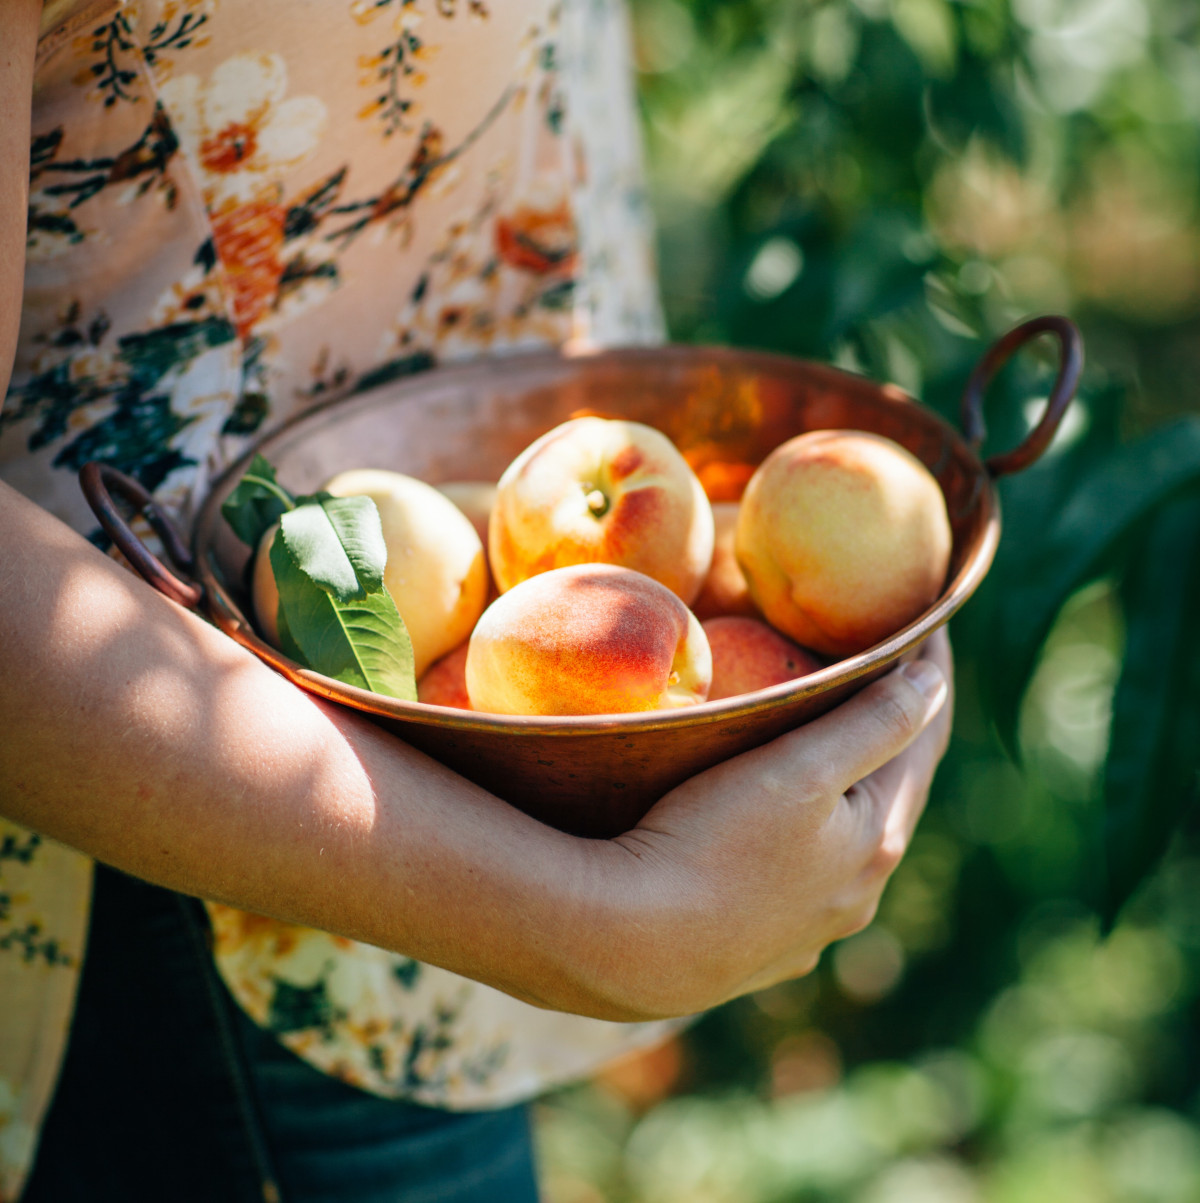 Bowl of peaches. Pollinating a peach tree by hand is how we would have to pollinate our crops if we didn't save the bees!